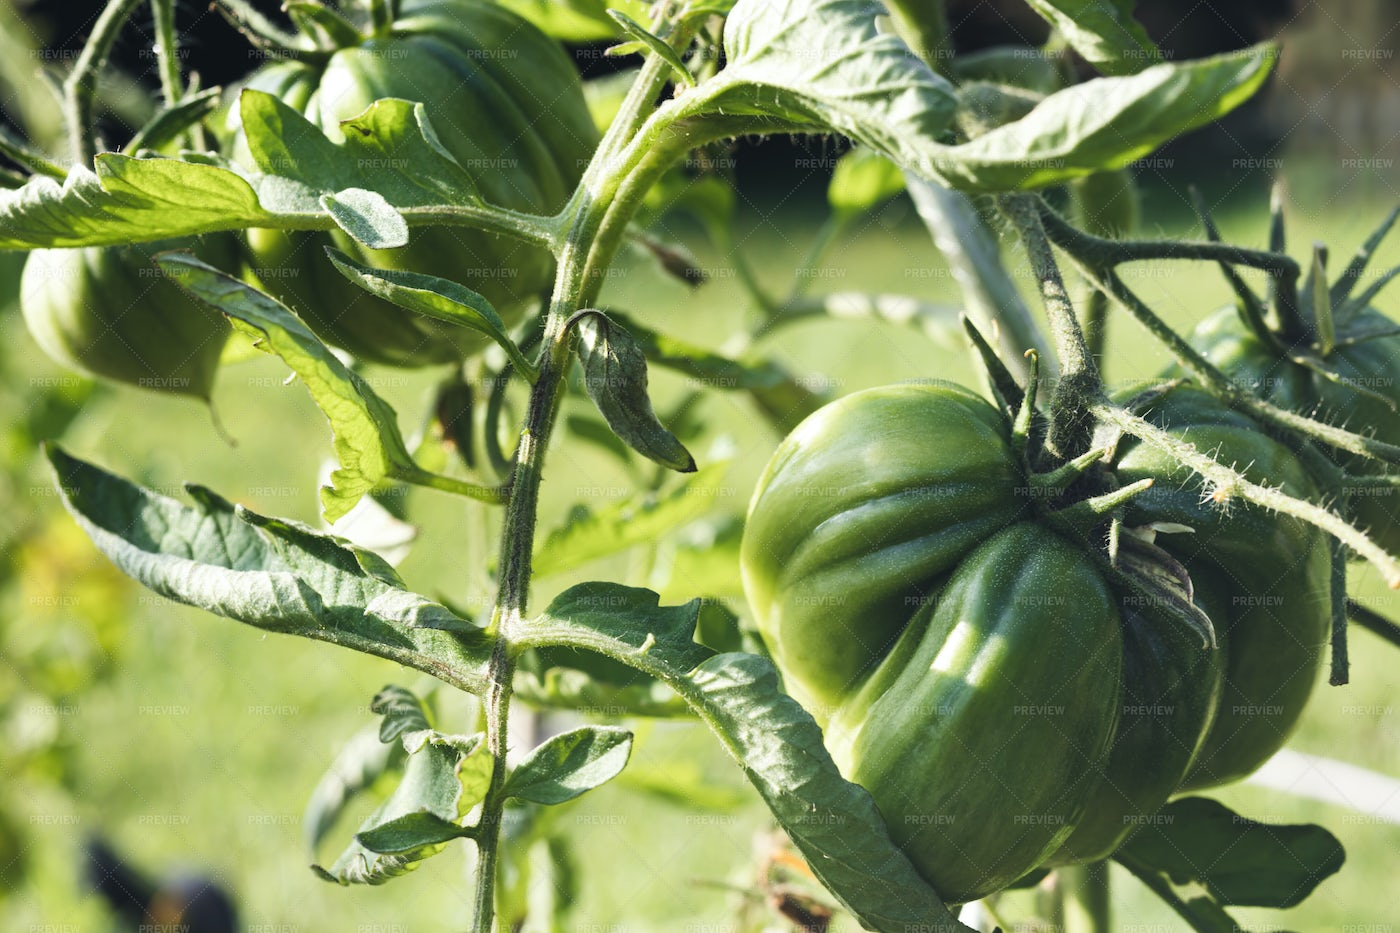 Unripe Tomatoes On A Branch: Stock Photos